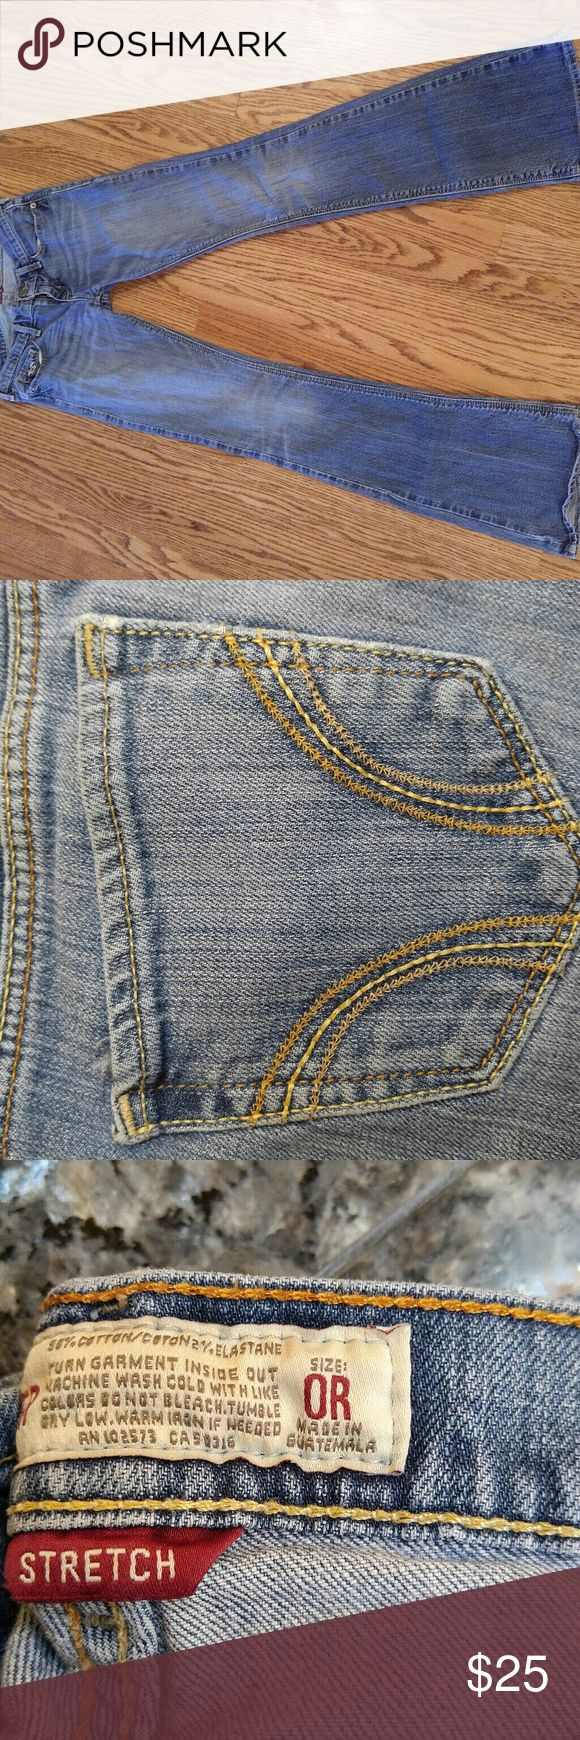 Hollister Boot Cut Jeans Size 0R, stretch. Super comfy! Barely worn, perfect condition Hollister Jeans Boot Cut